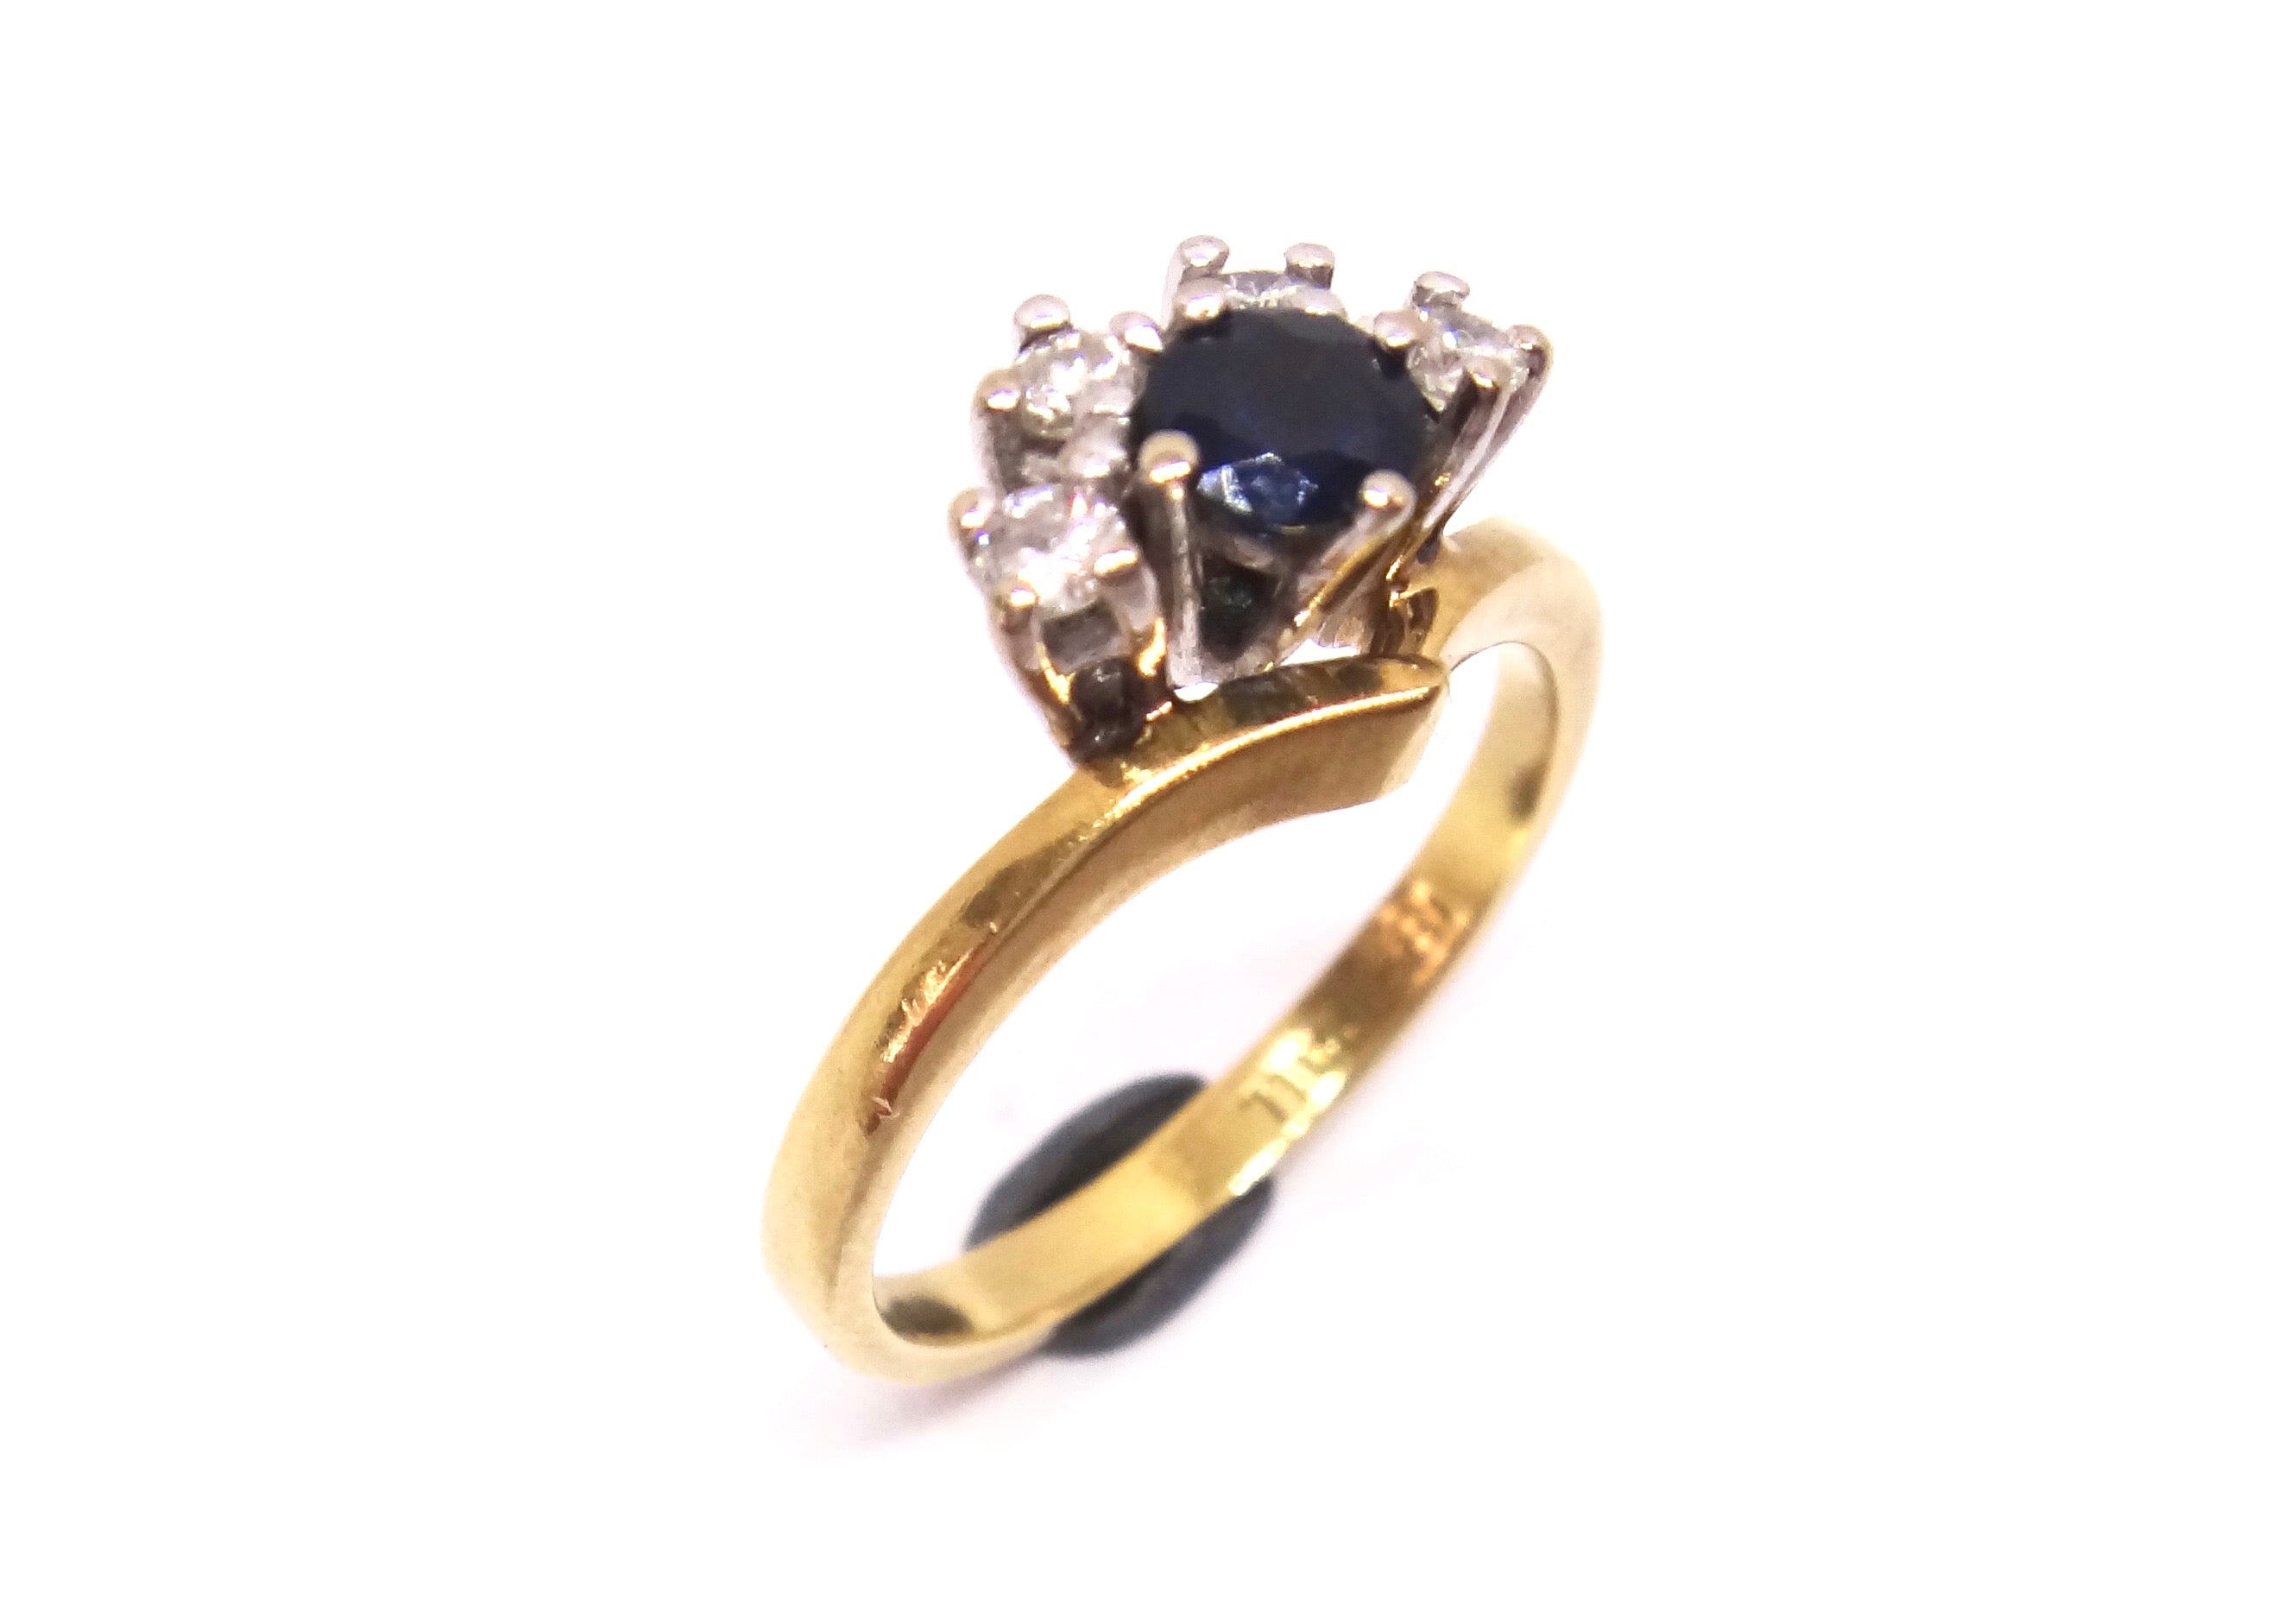 18CT Yellow GOLD, Palladium, Sapphire & Diamond Crescent Shape Ring